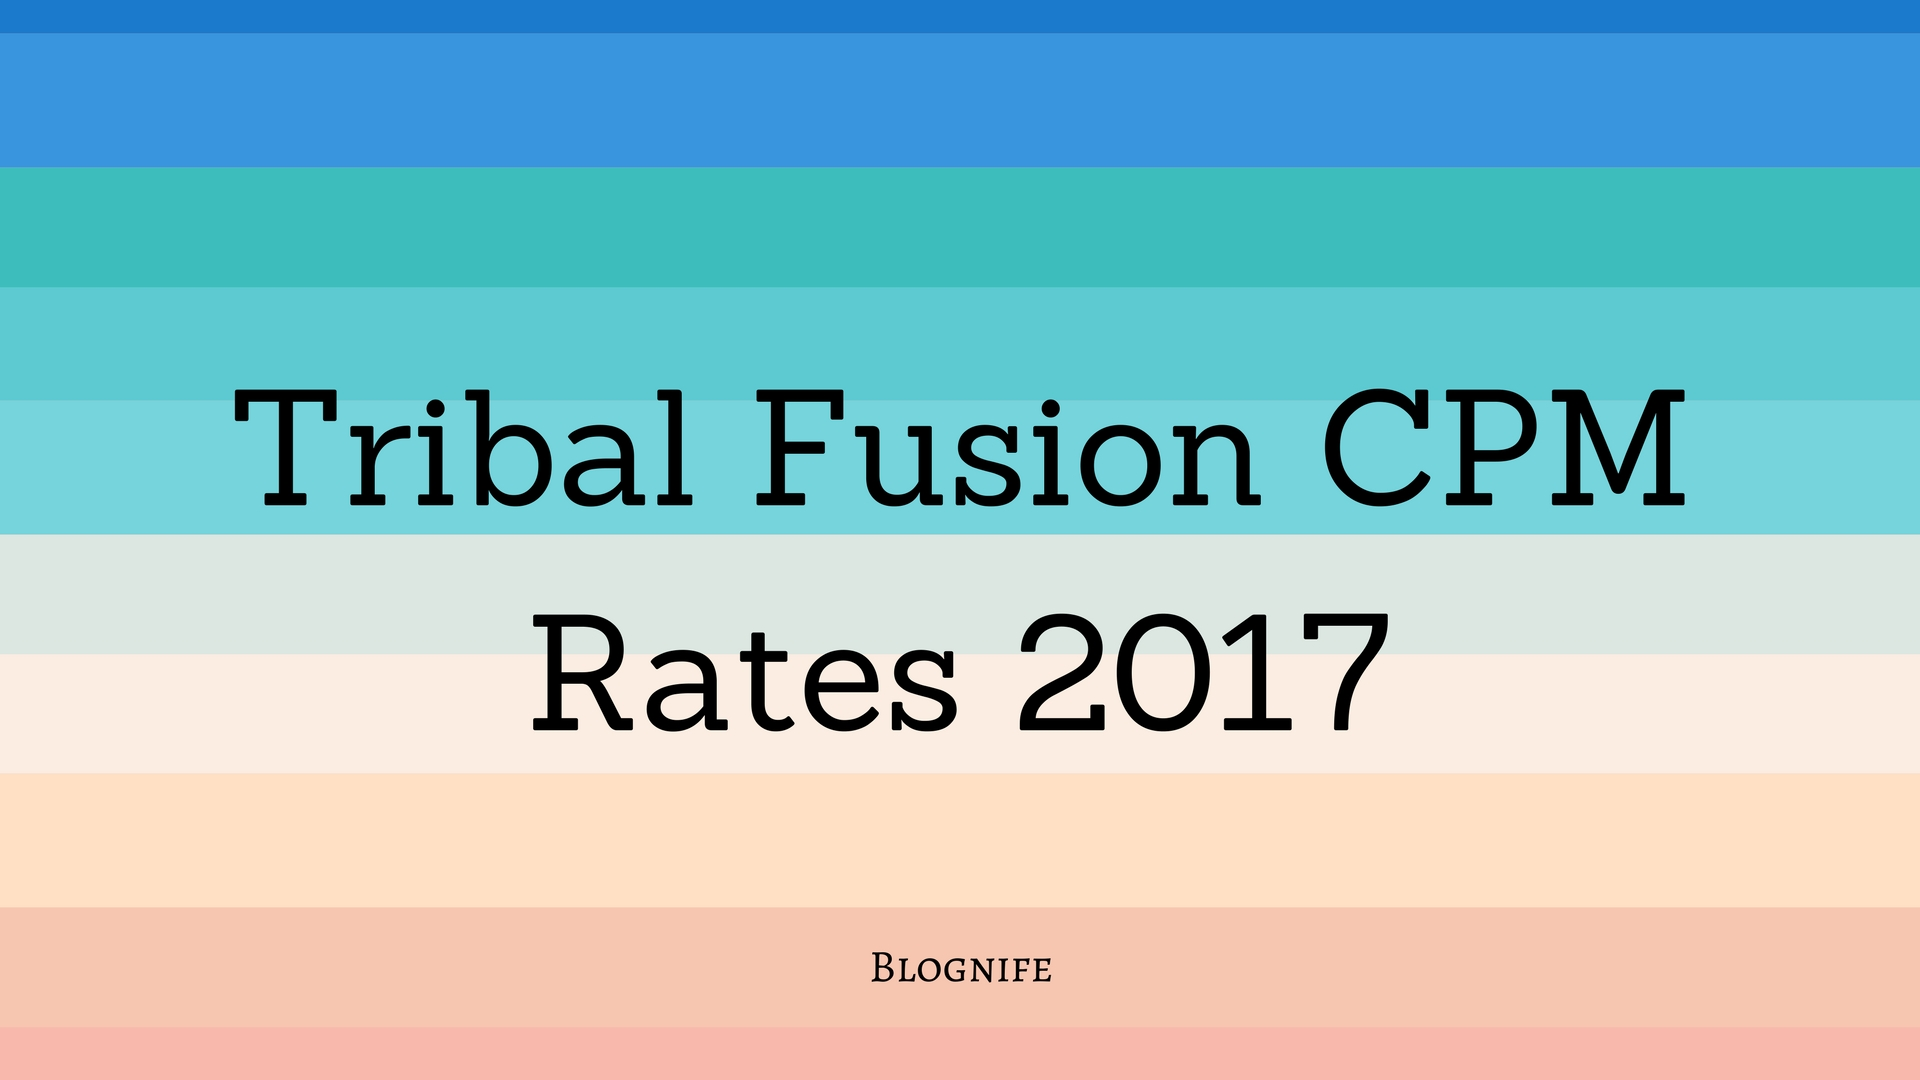 Tribal Fusion CPM Rates 2017